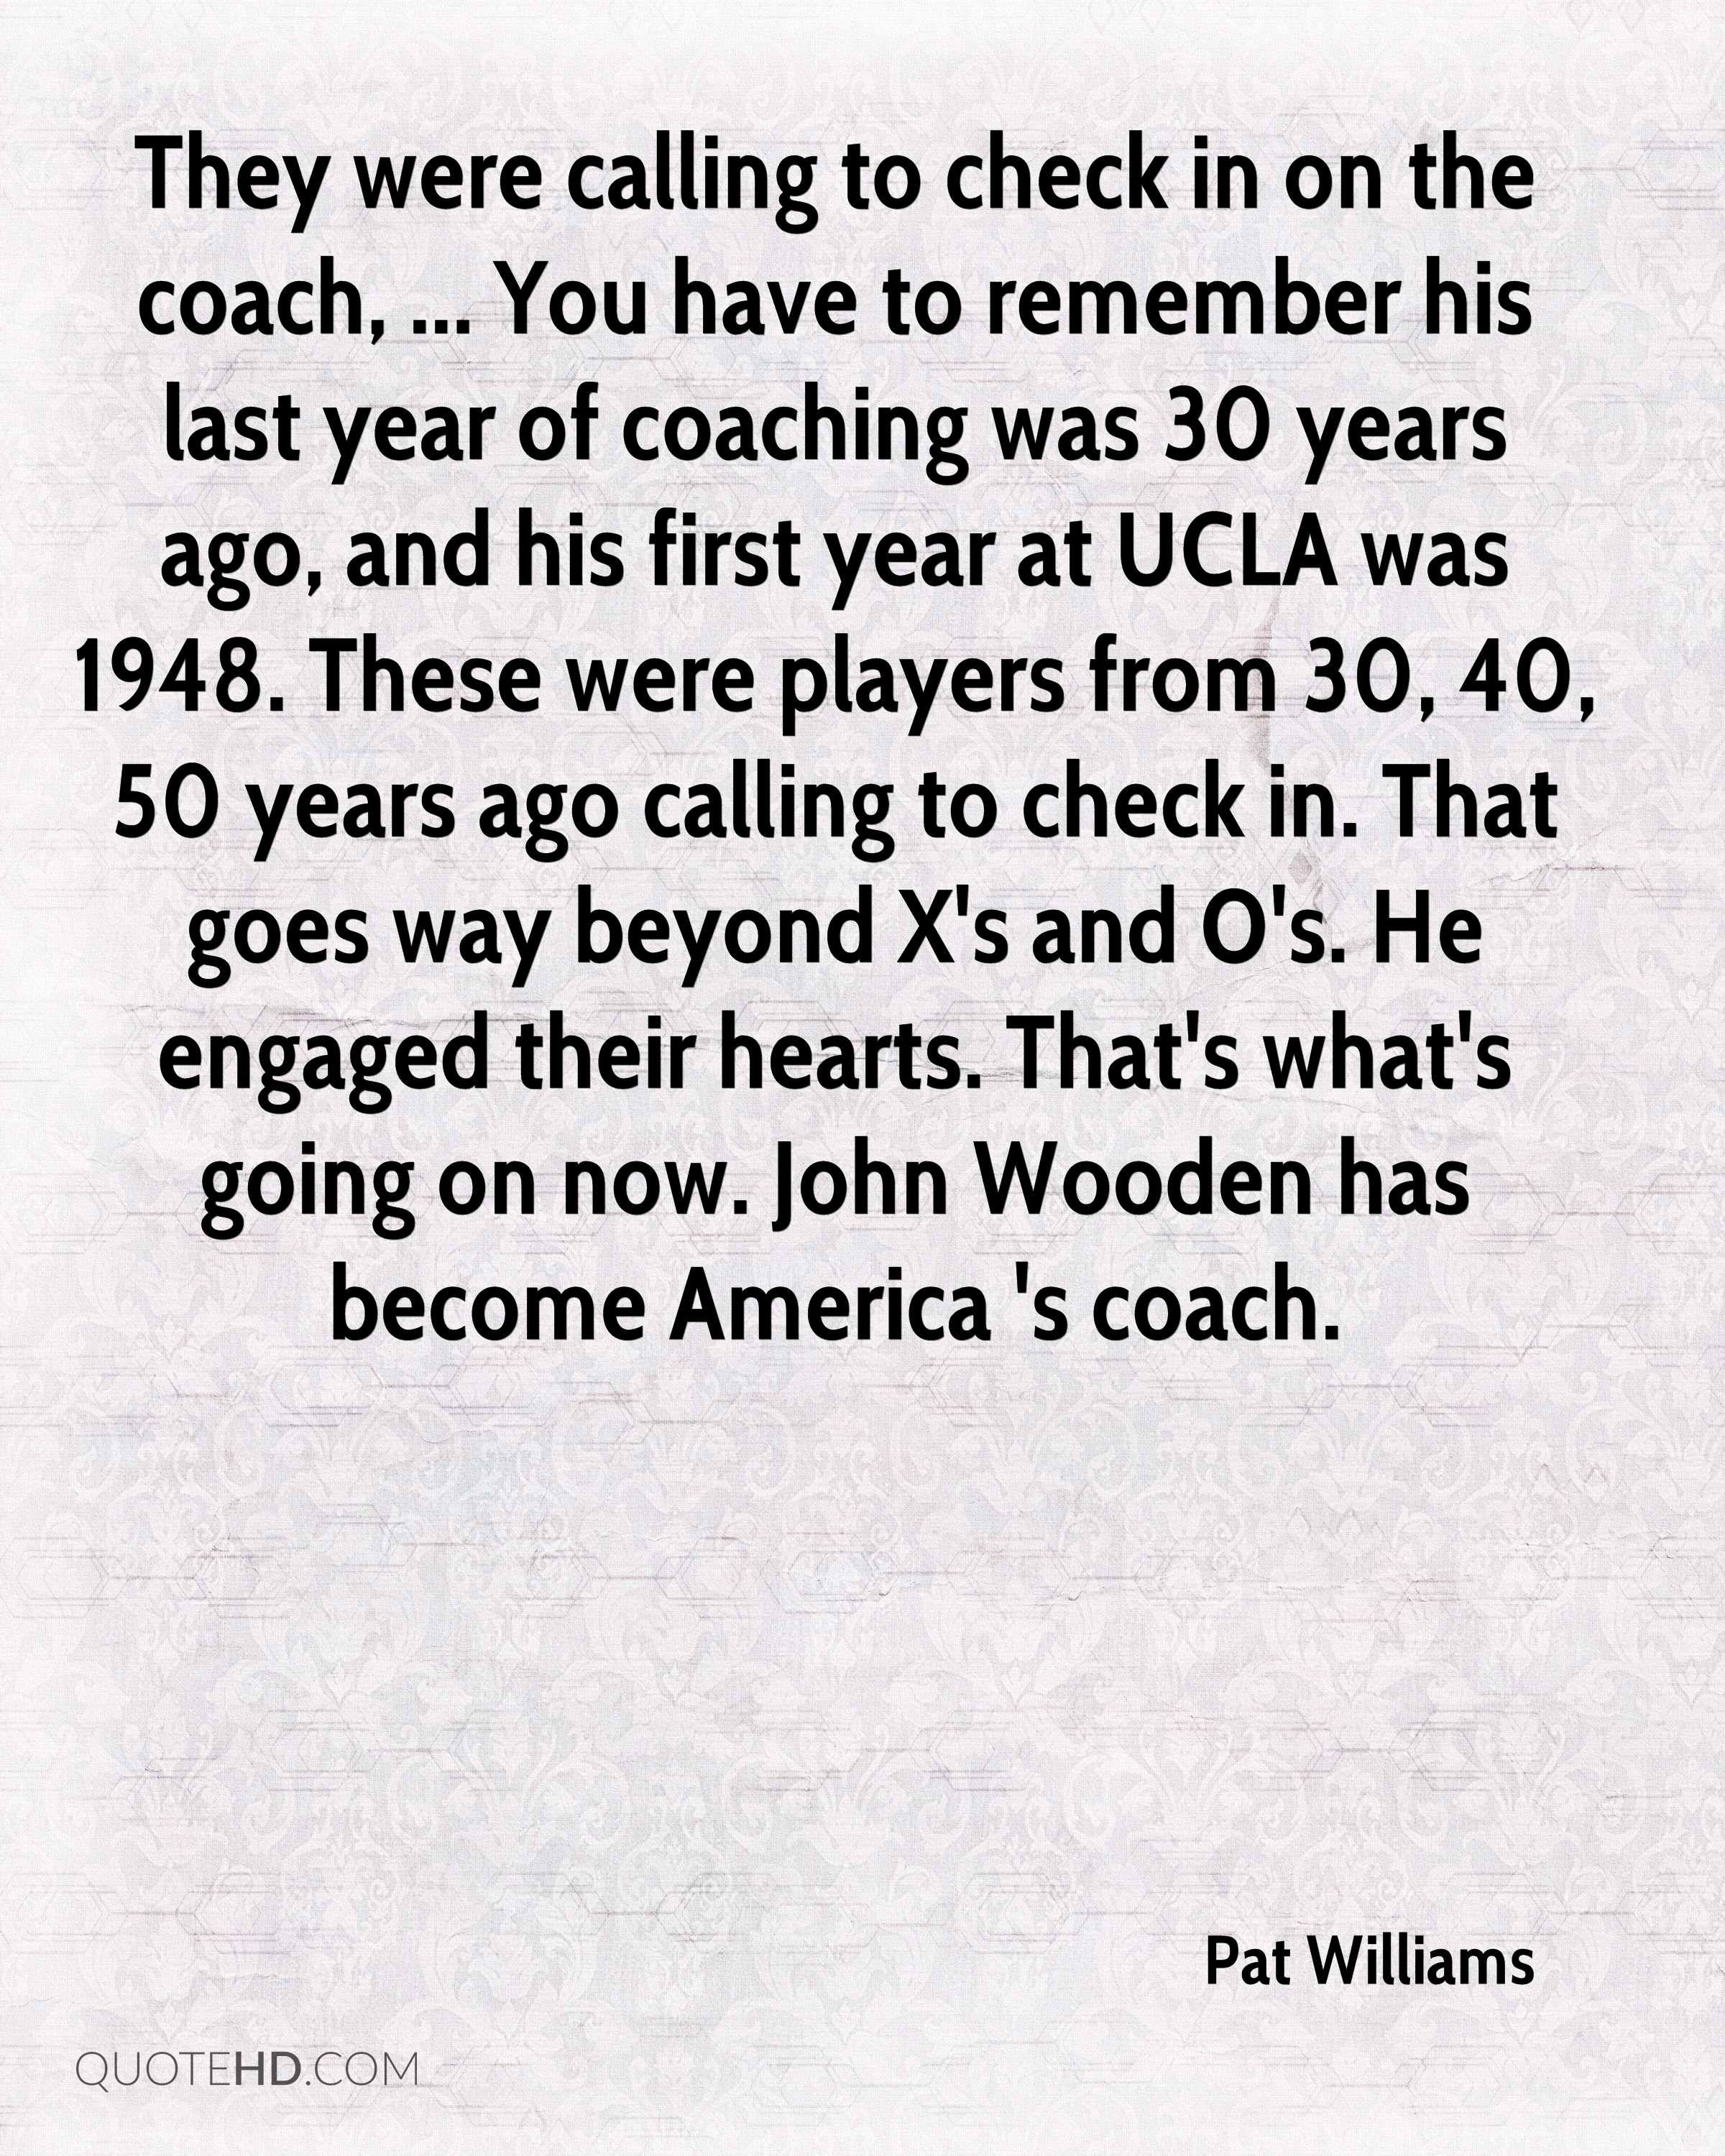 They were calling to check in on the coach, ... You have to remember his last year of coaching was 30 years ago, and his first year at UCLA was 1948. These were players from 30, 40, 50 years ago calling to check in. That goes way beyond X's and O's. He engaged their hearts. That's what's going on now. John Wooden has become America 's coach.